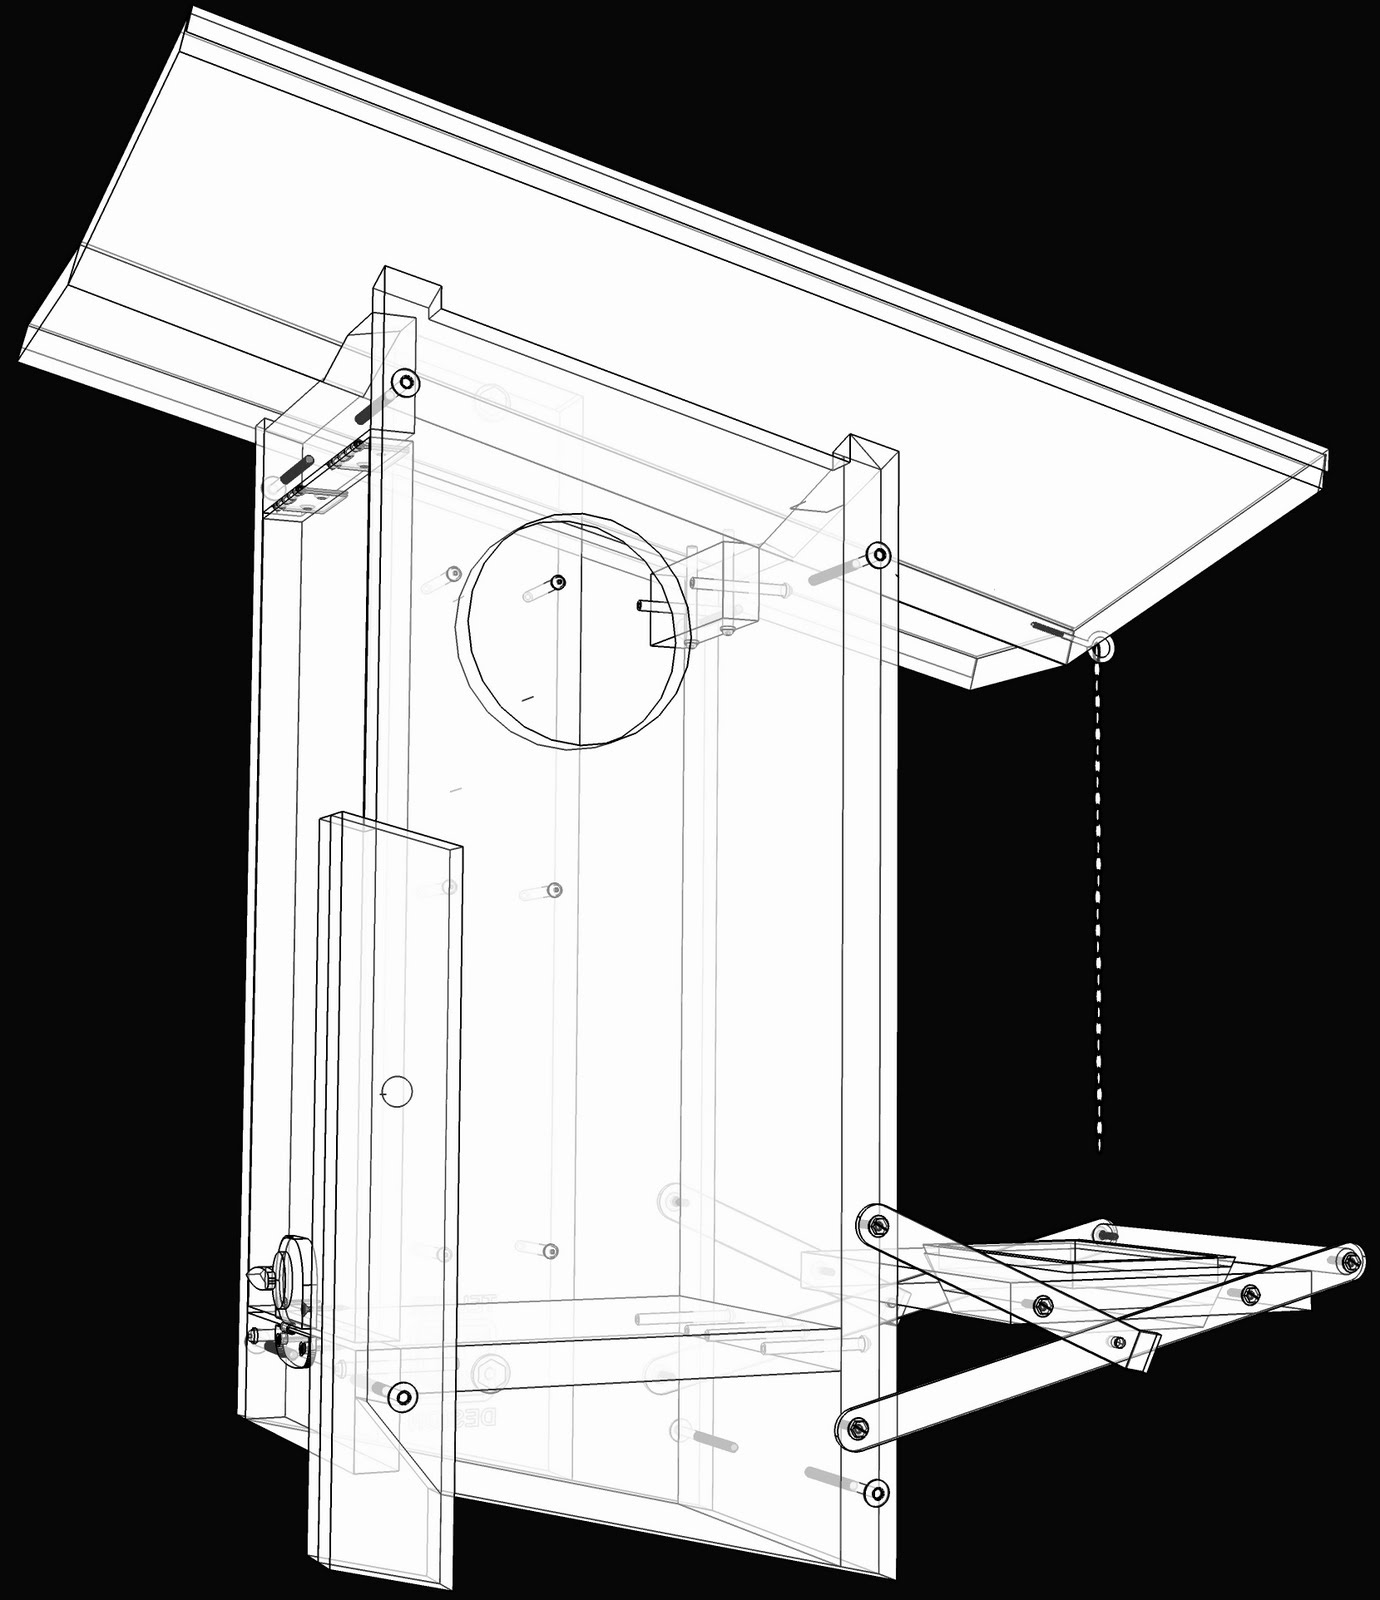 bird house plans sketchup